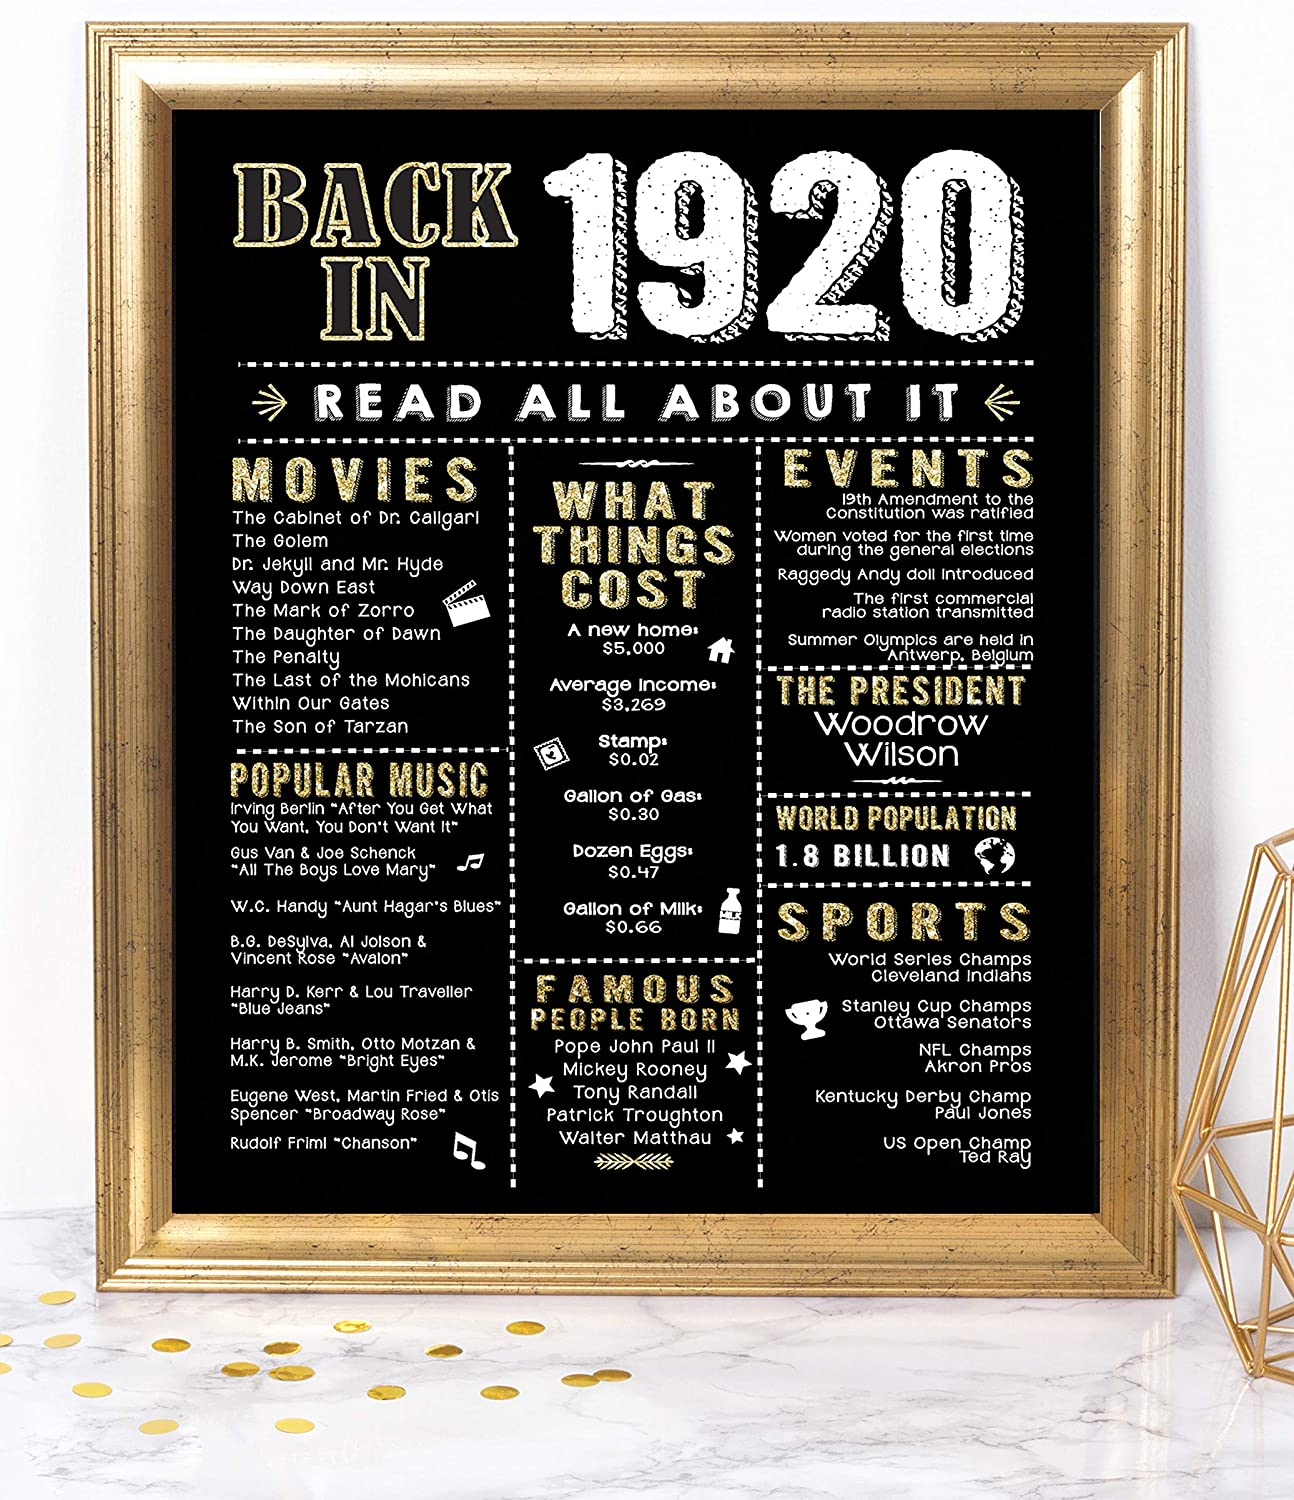 1920s Great Gatsby Roaring 20s Party Decorations Supplies Decor Centerpiece Black and Gold Includes Back in 1920 Sign 8.5 X 11 Unframed